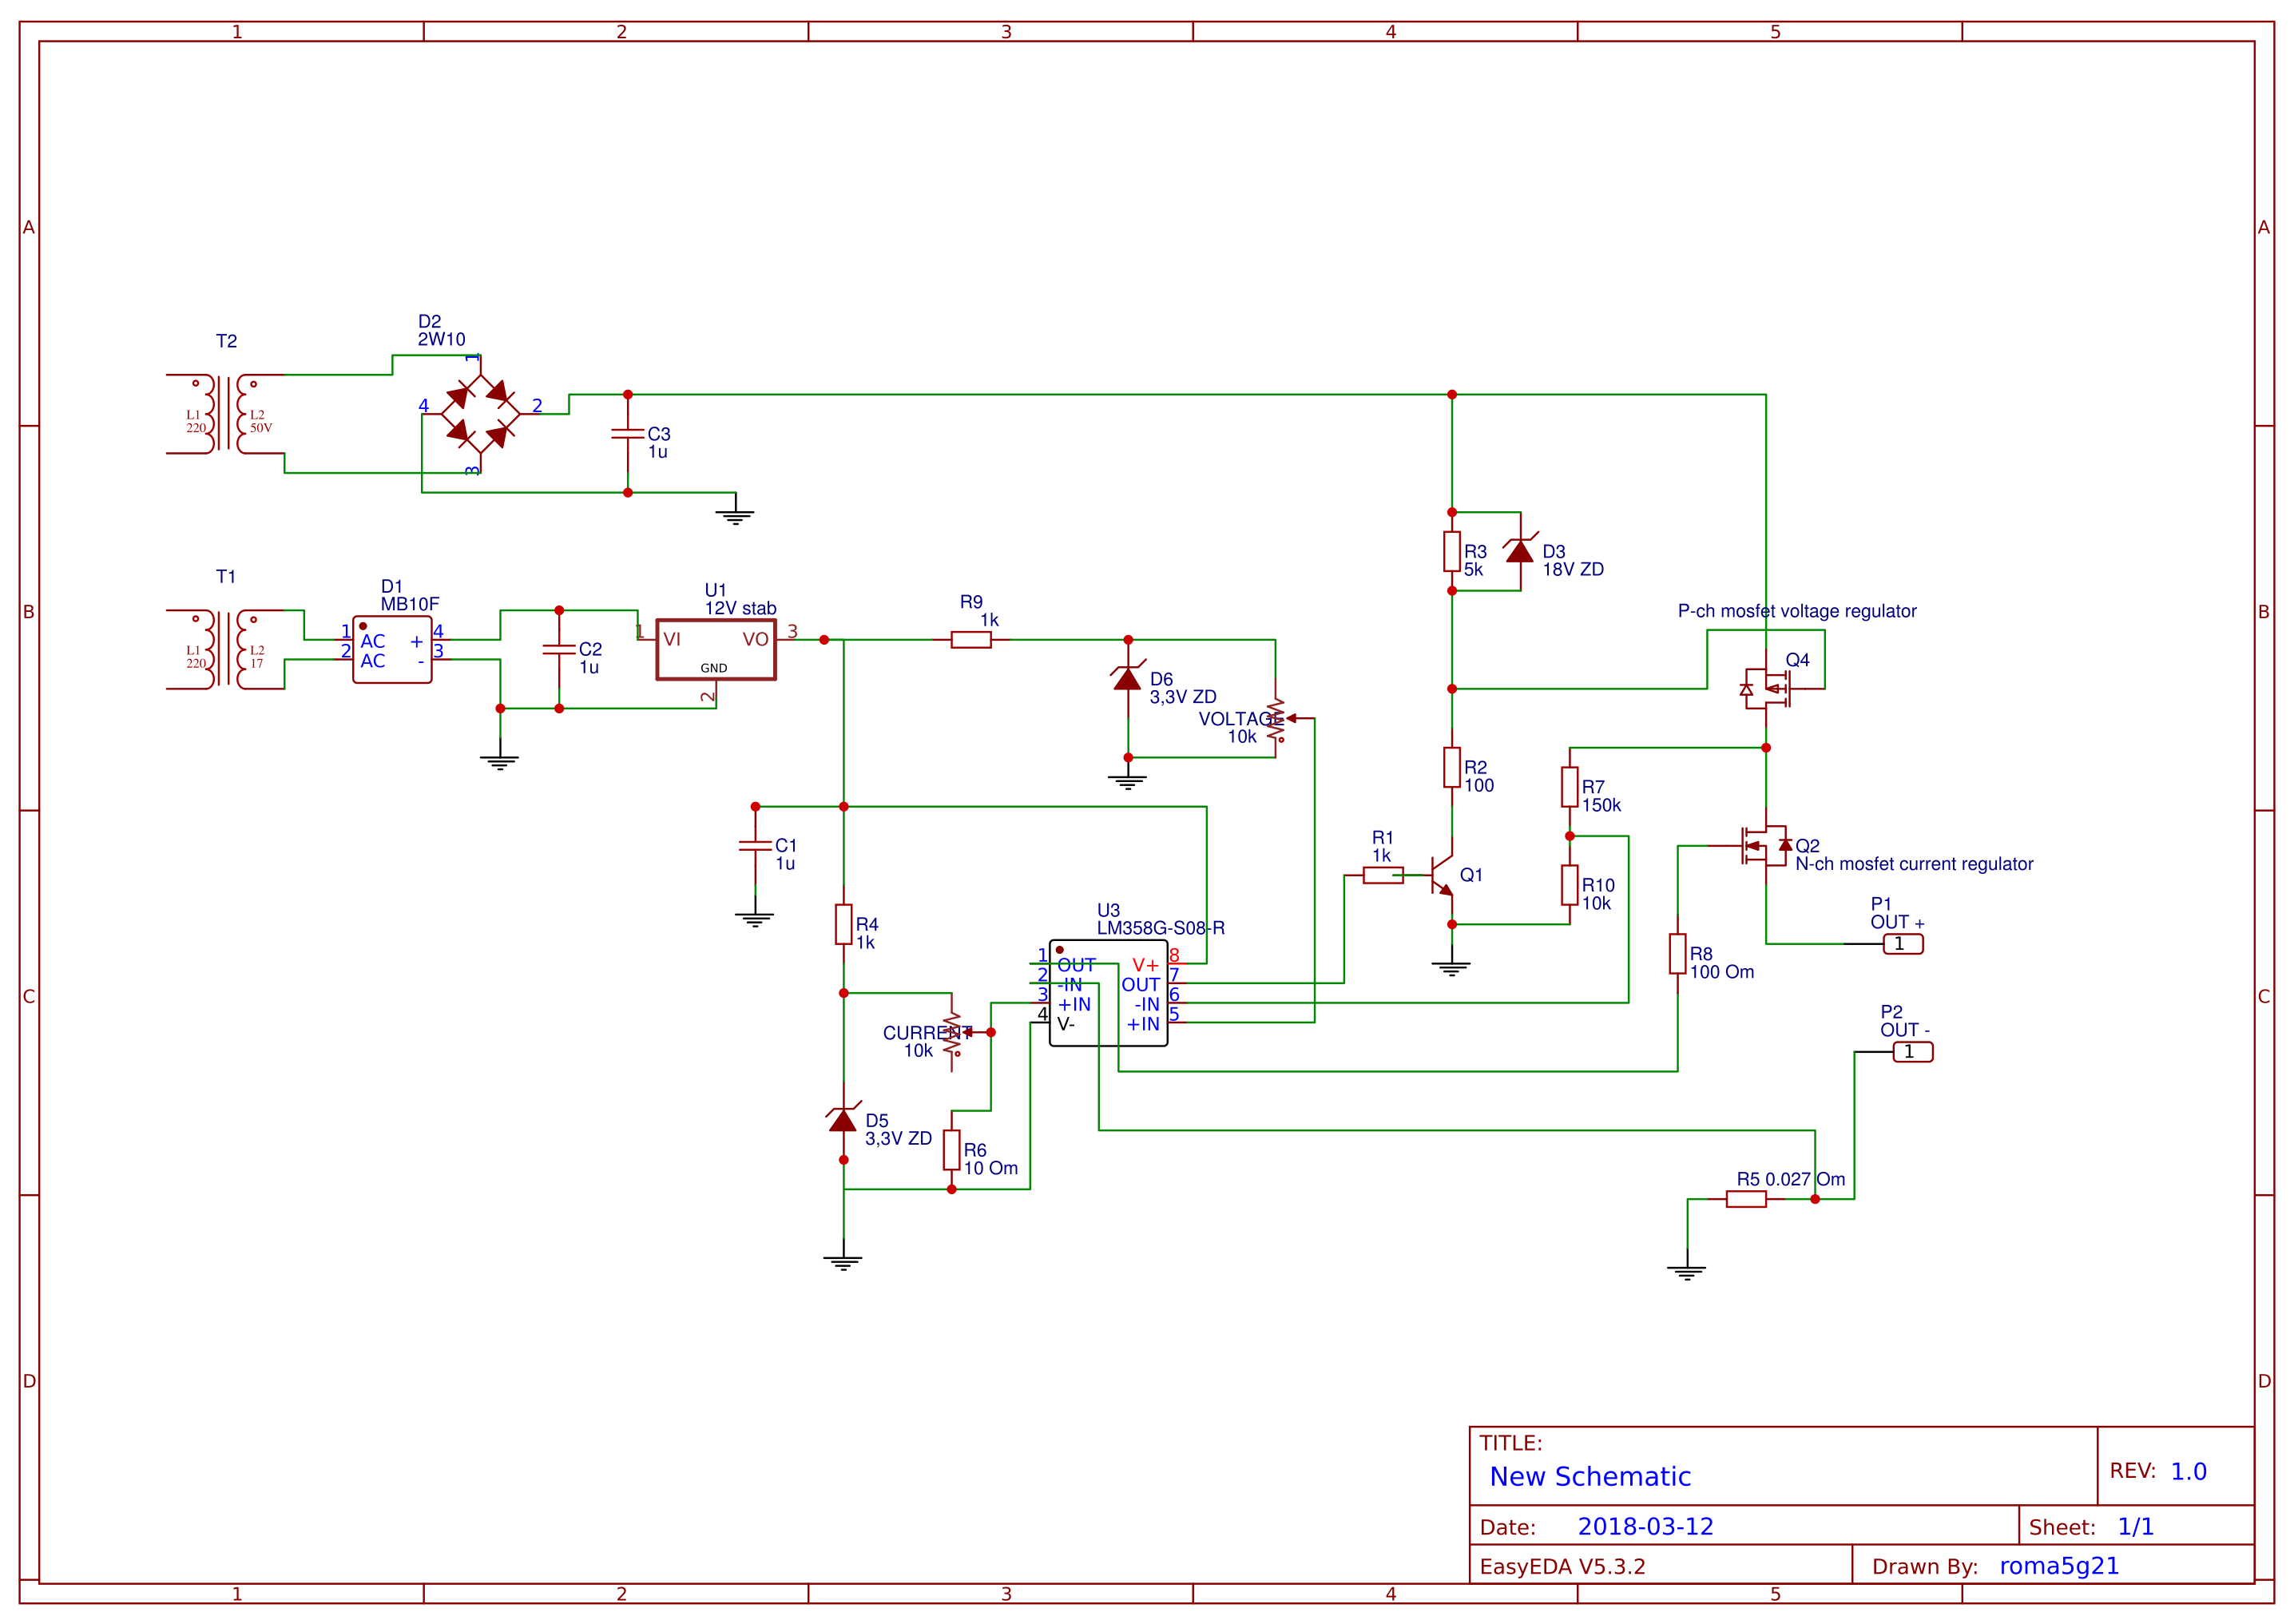 Schematic__Sheet-1_20180312143339.png